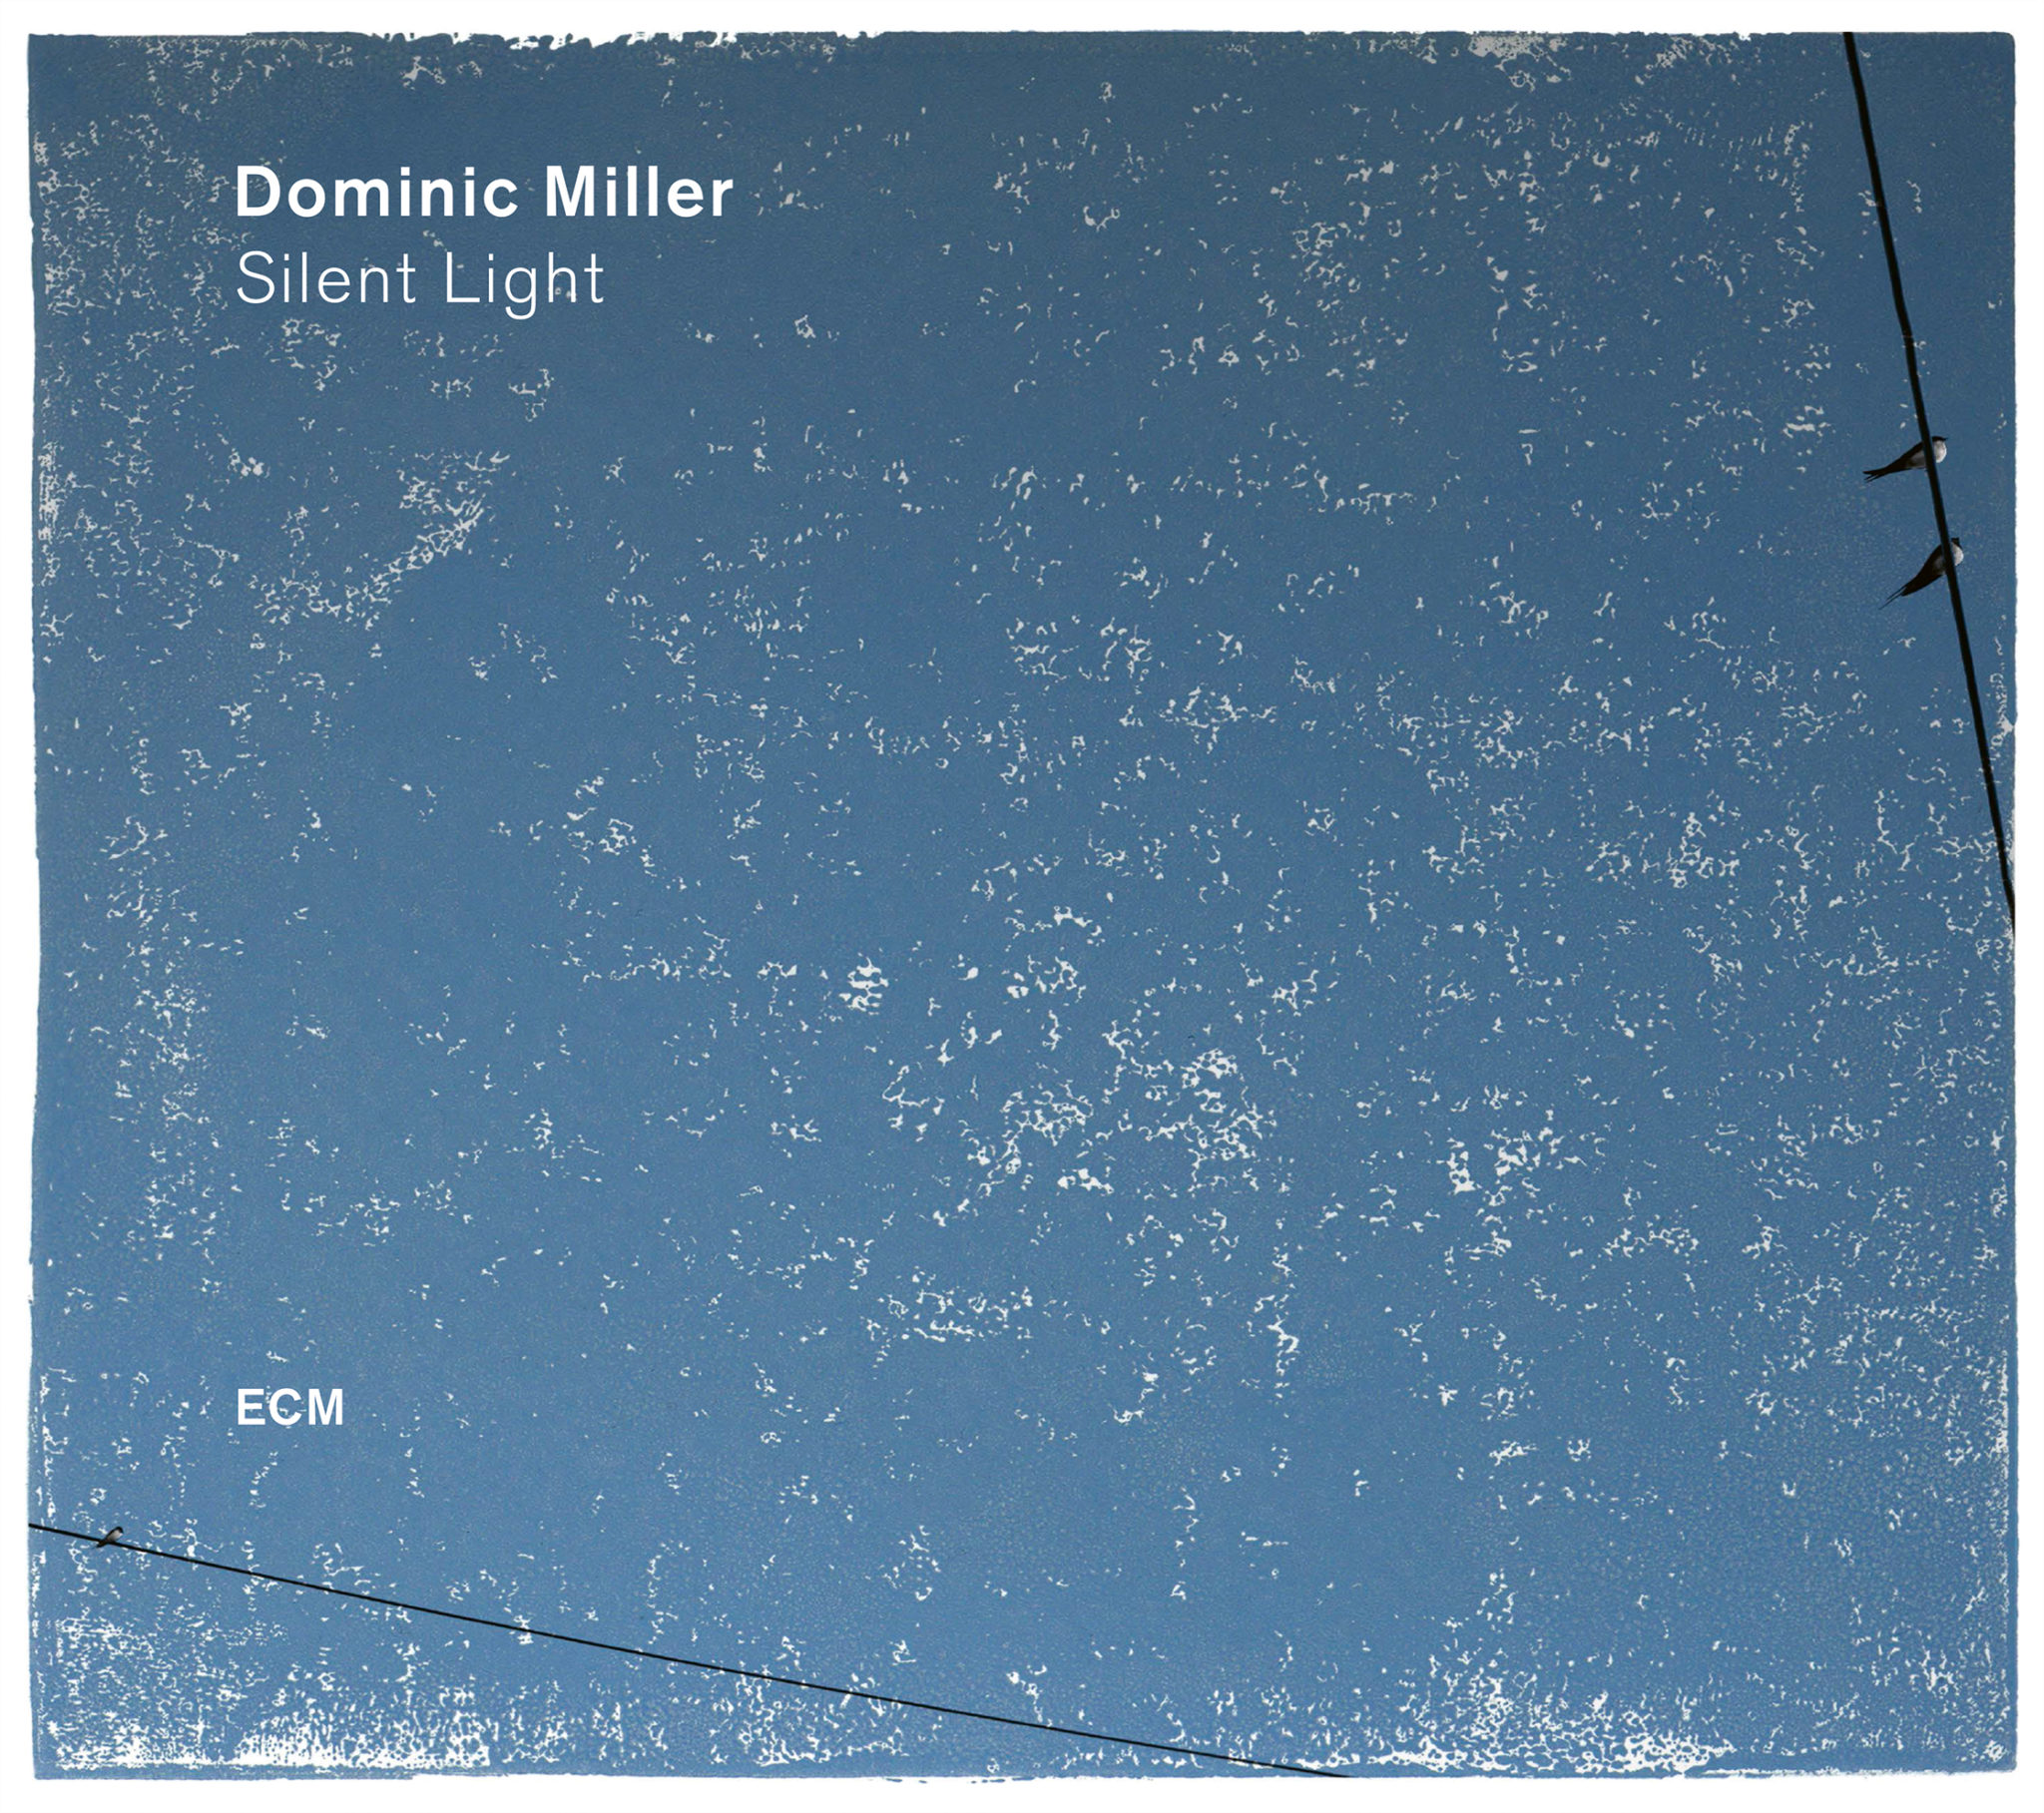 REVIEW: Dominic Miller - Silent Night